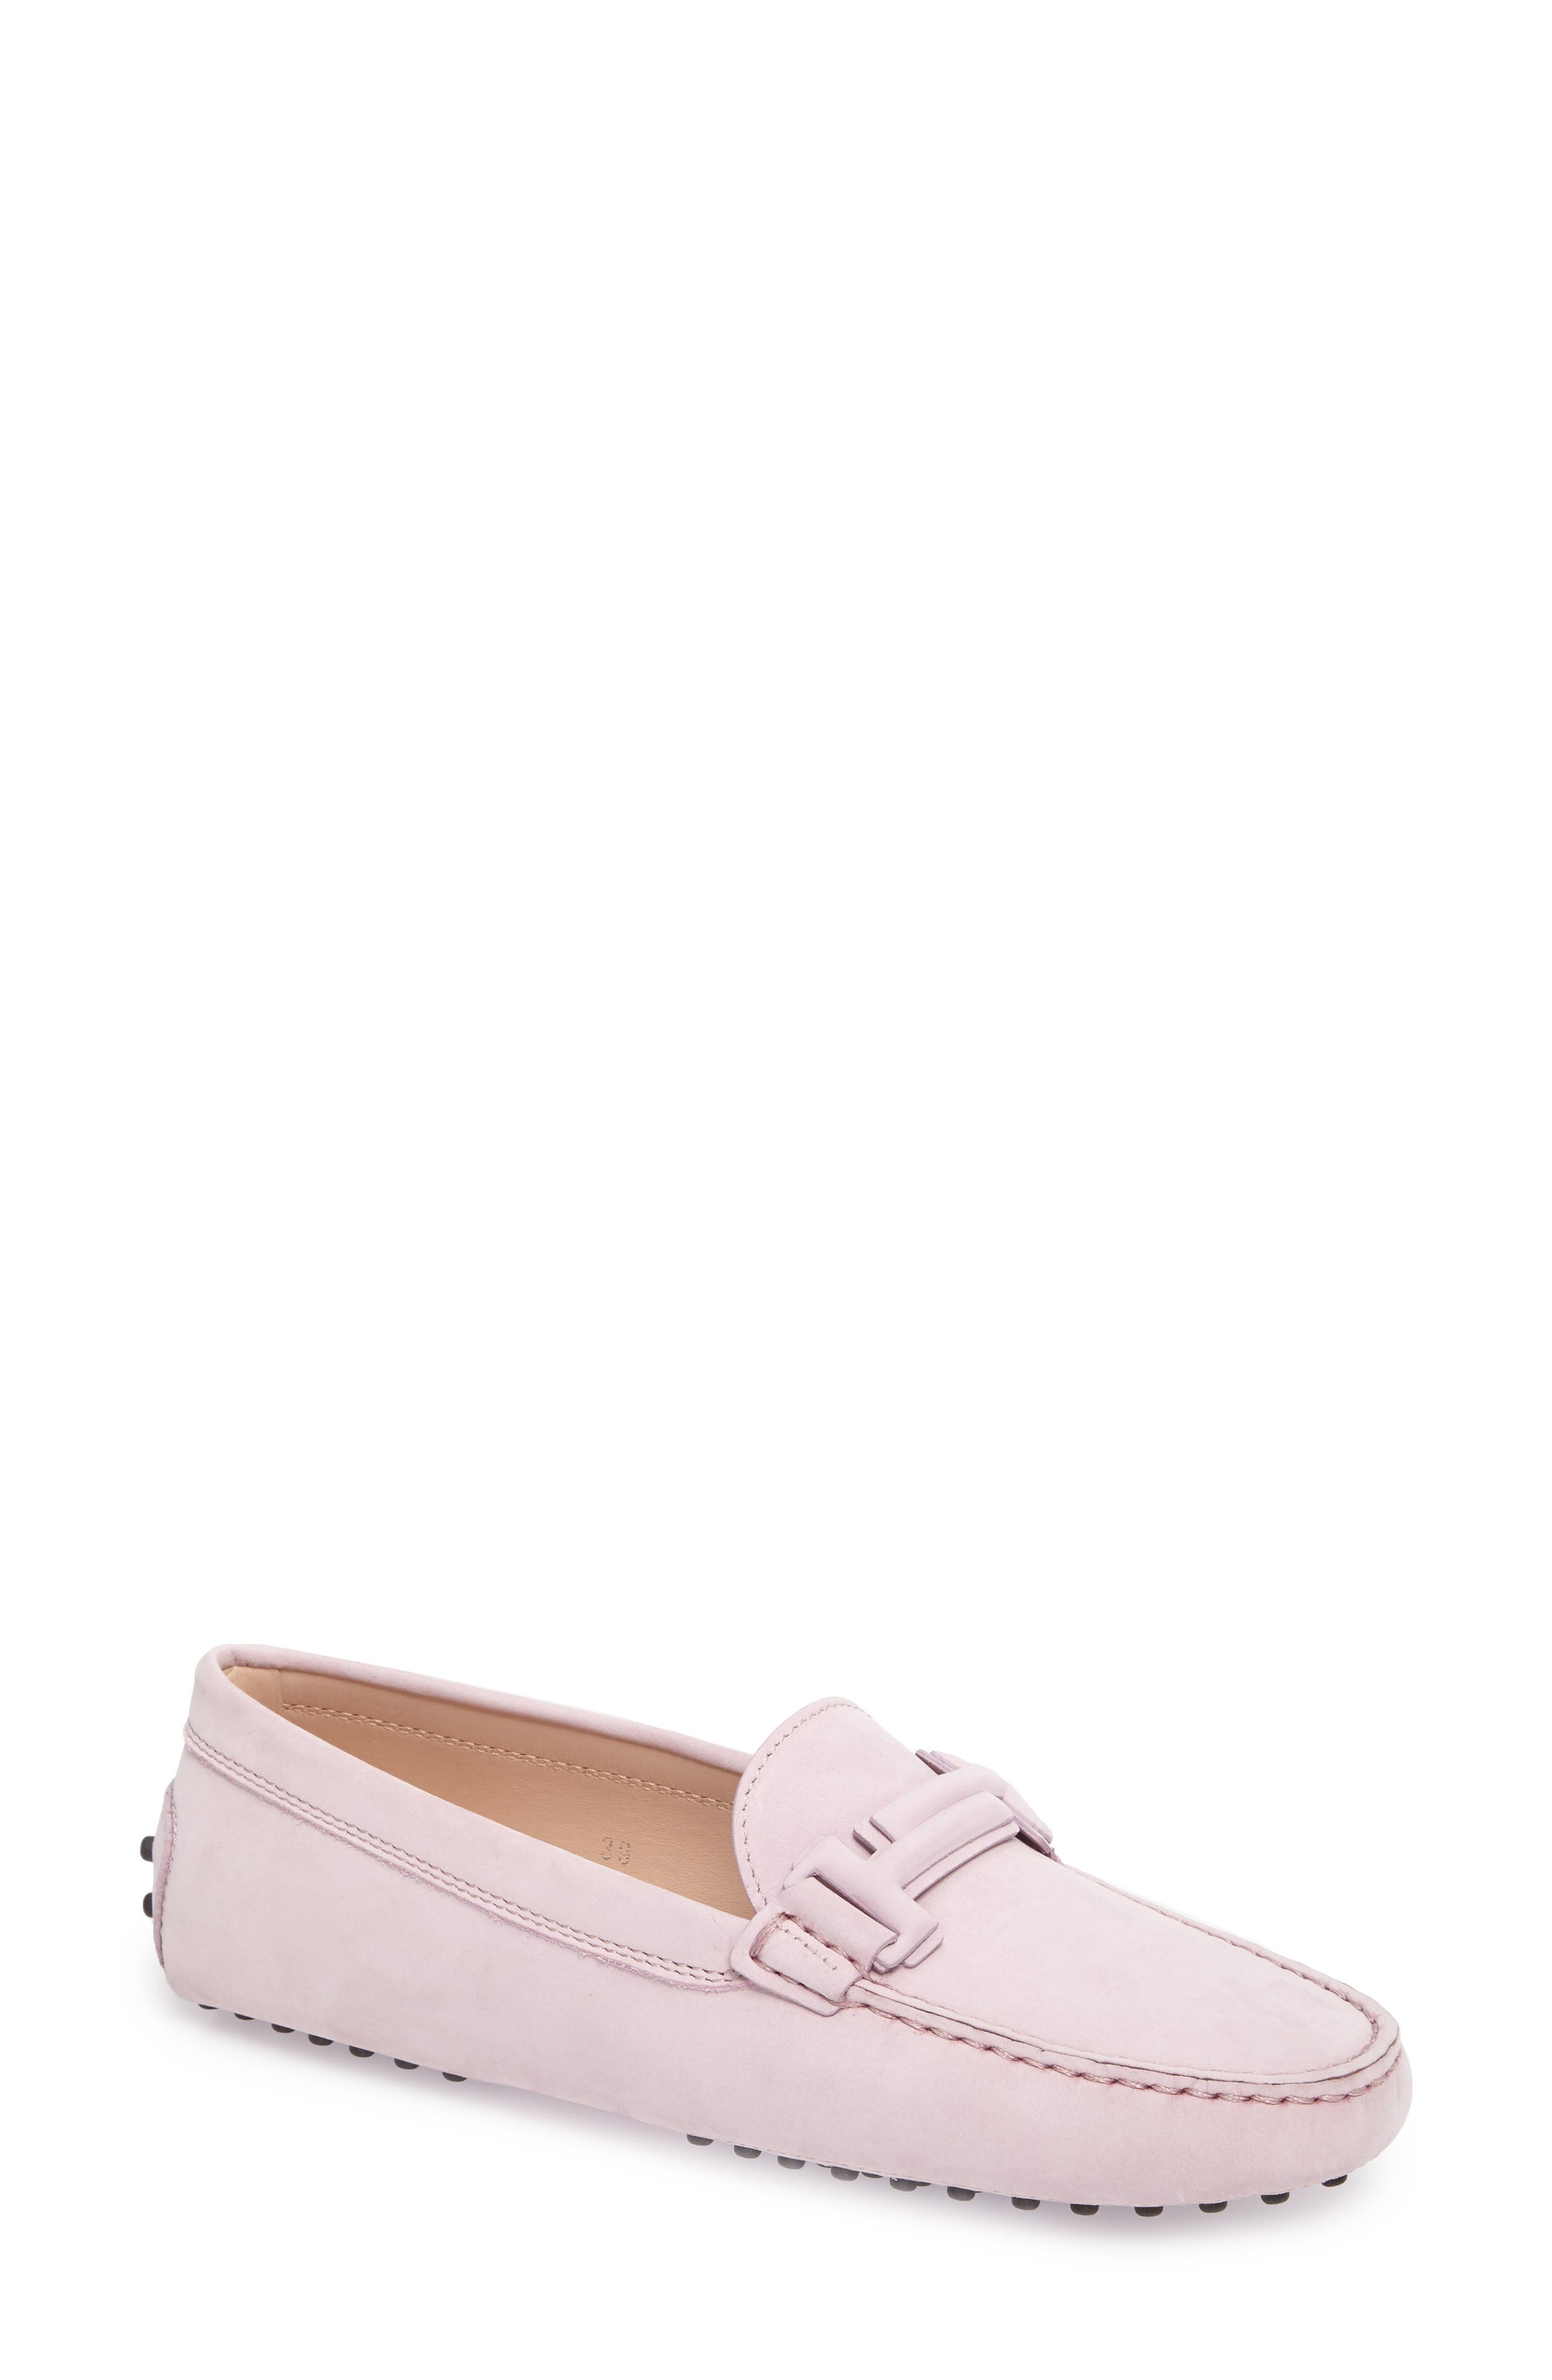 Gommini Covered Double T Loafer,                             Main thumbnail 2, color,